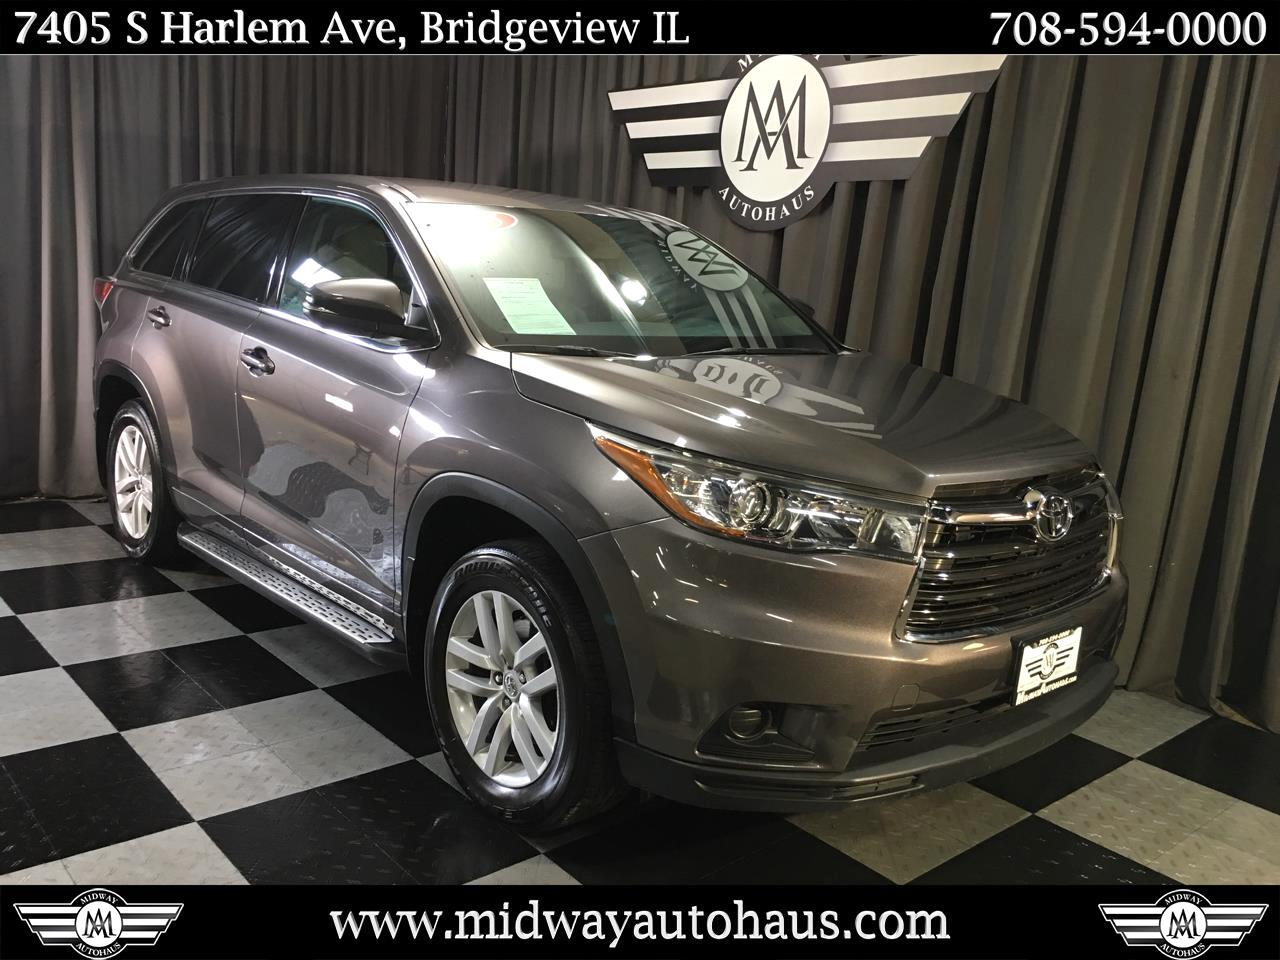 Pre-Owned 2015 Toyota Highlander AWD 4dr V6 LE (Natl)